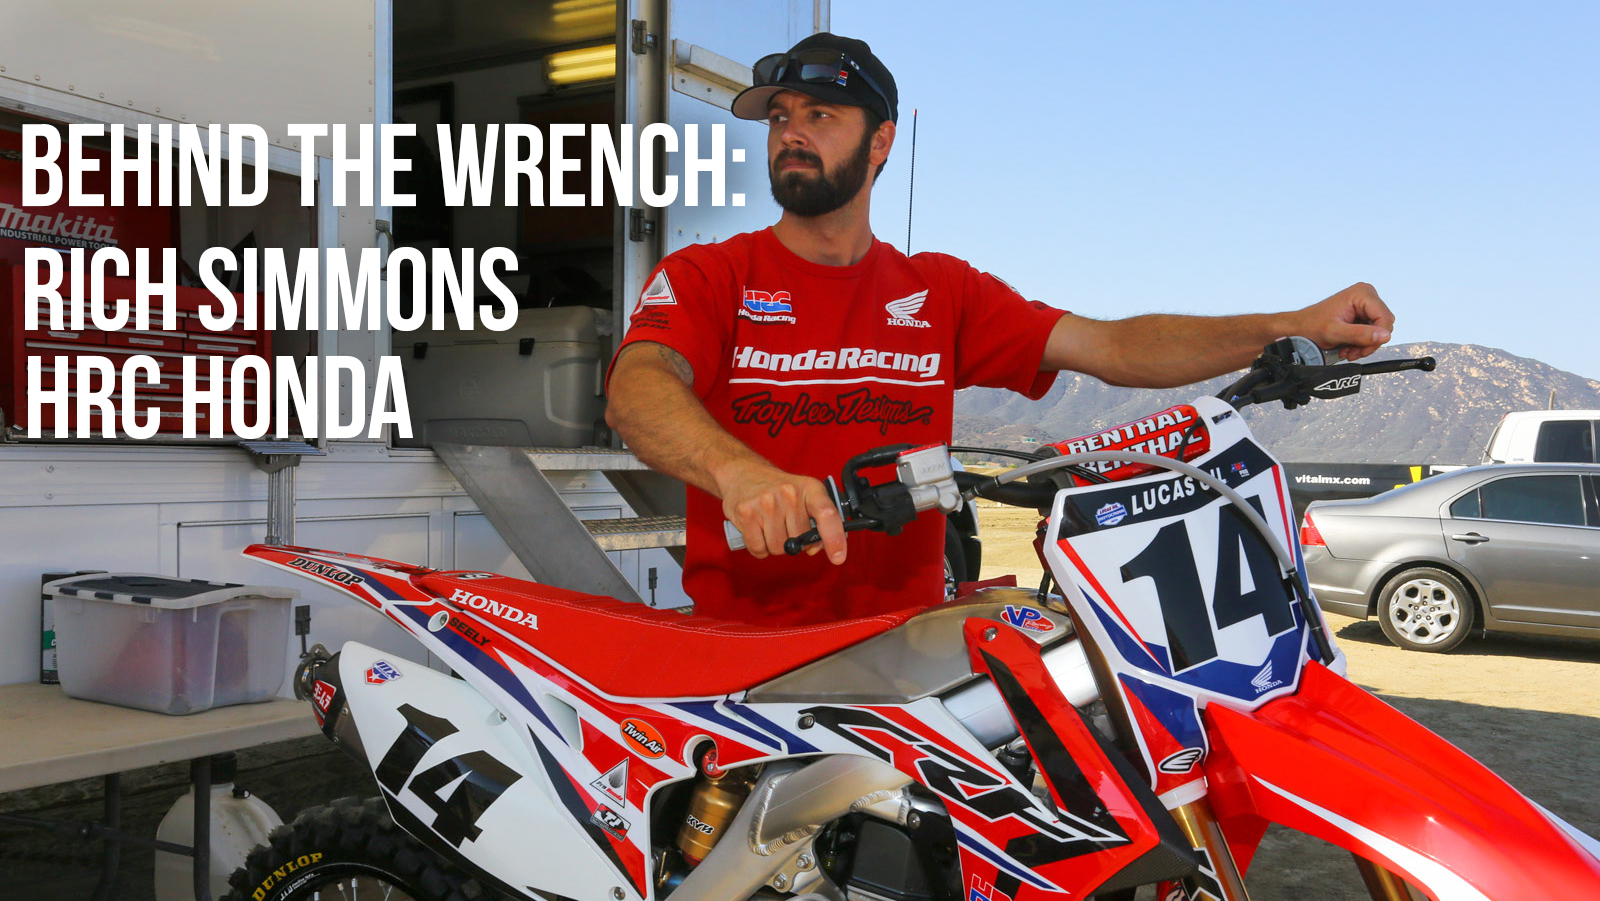 Behind the Wrench: Rich Simmons - HRC Honda